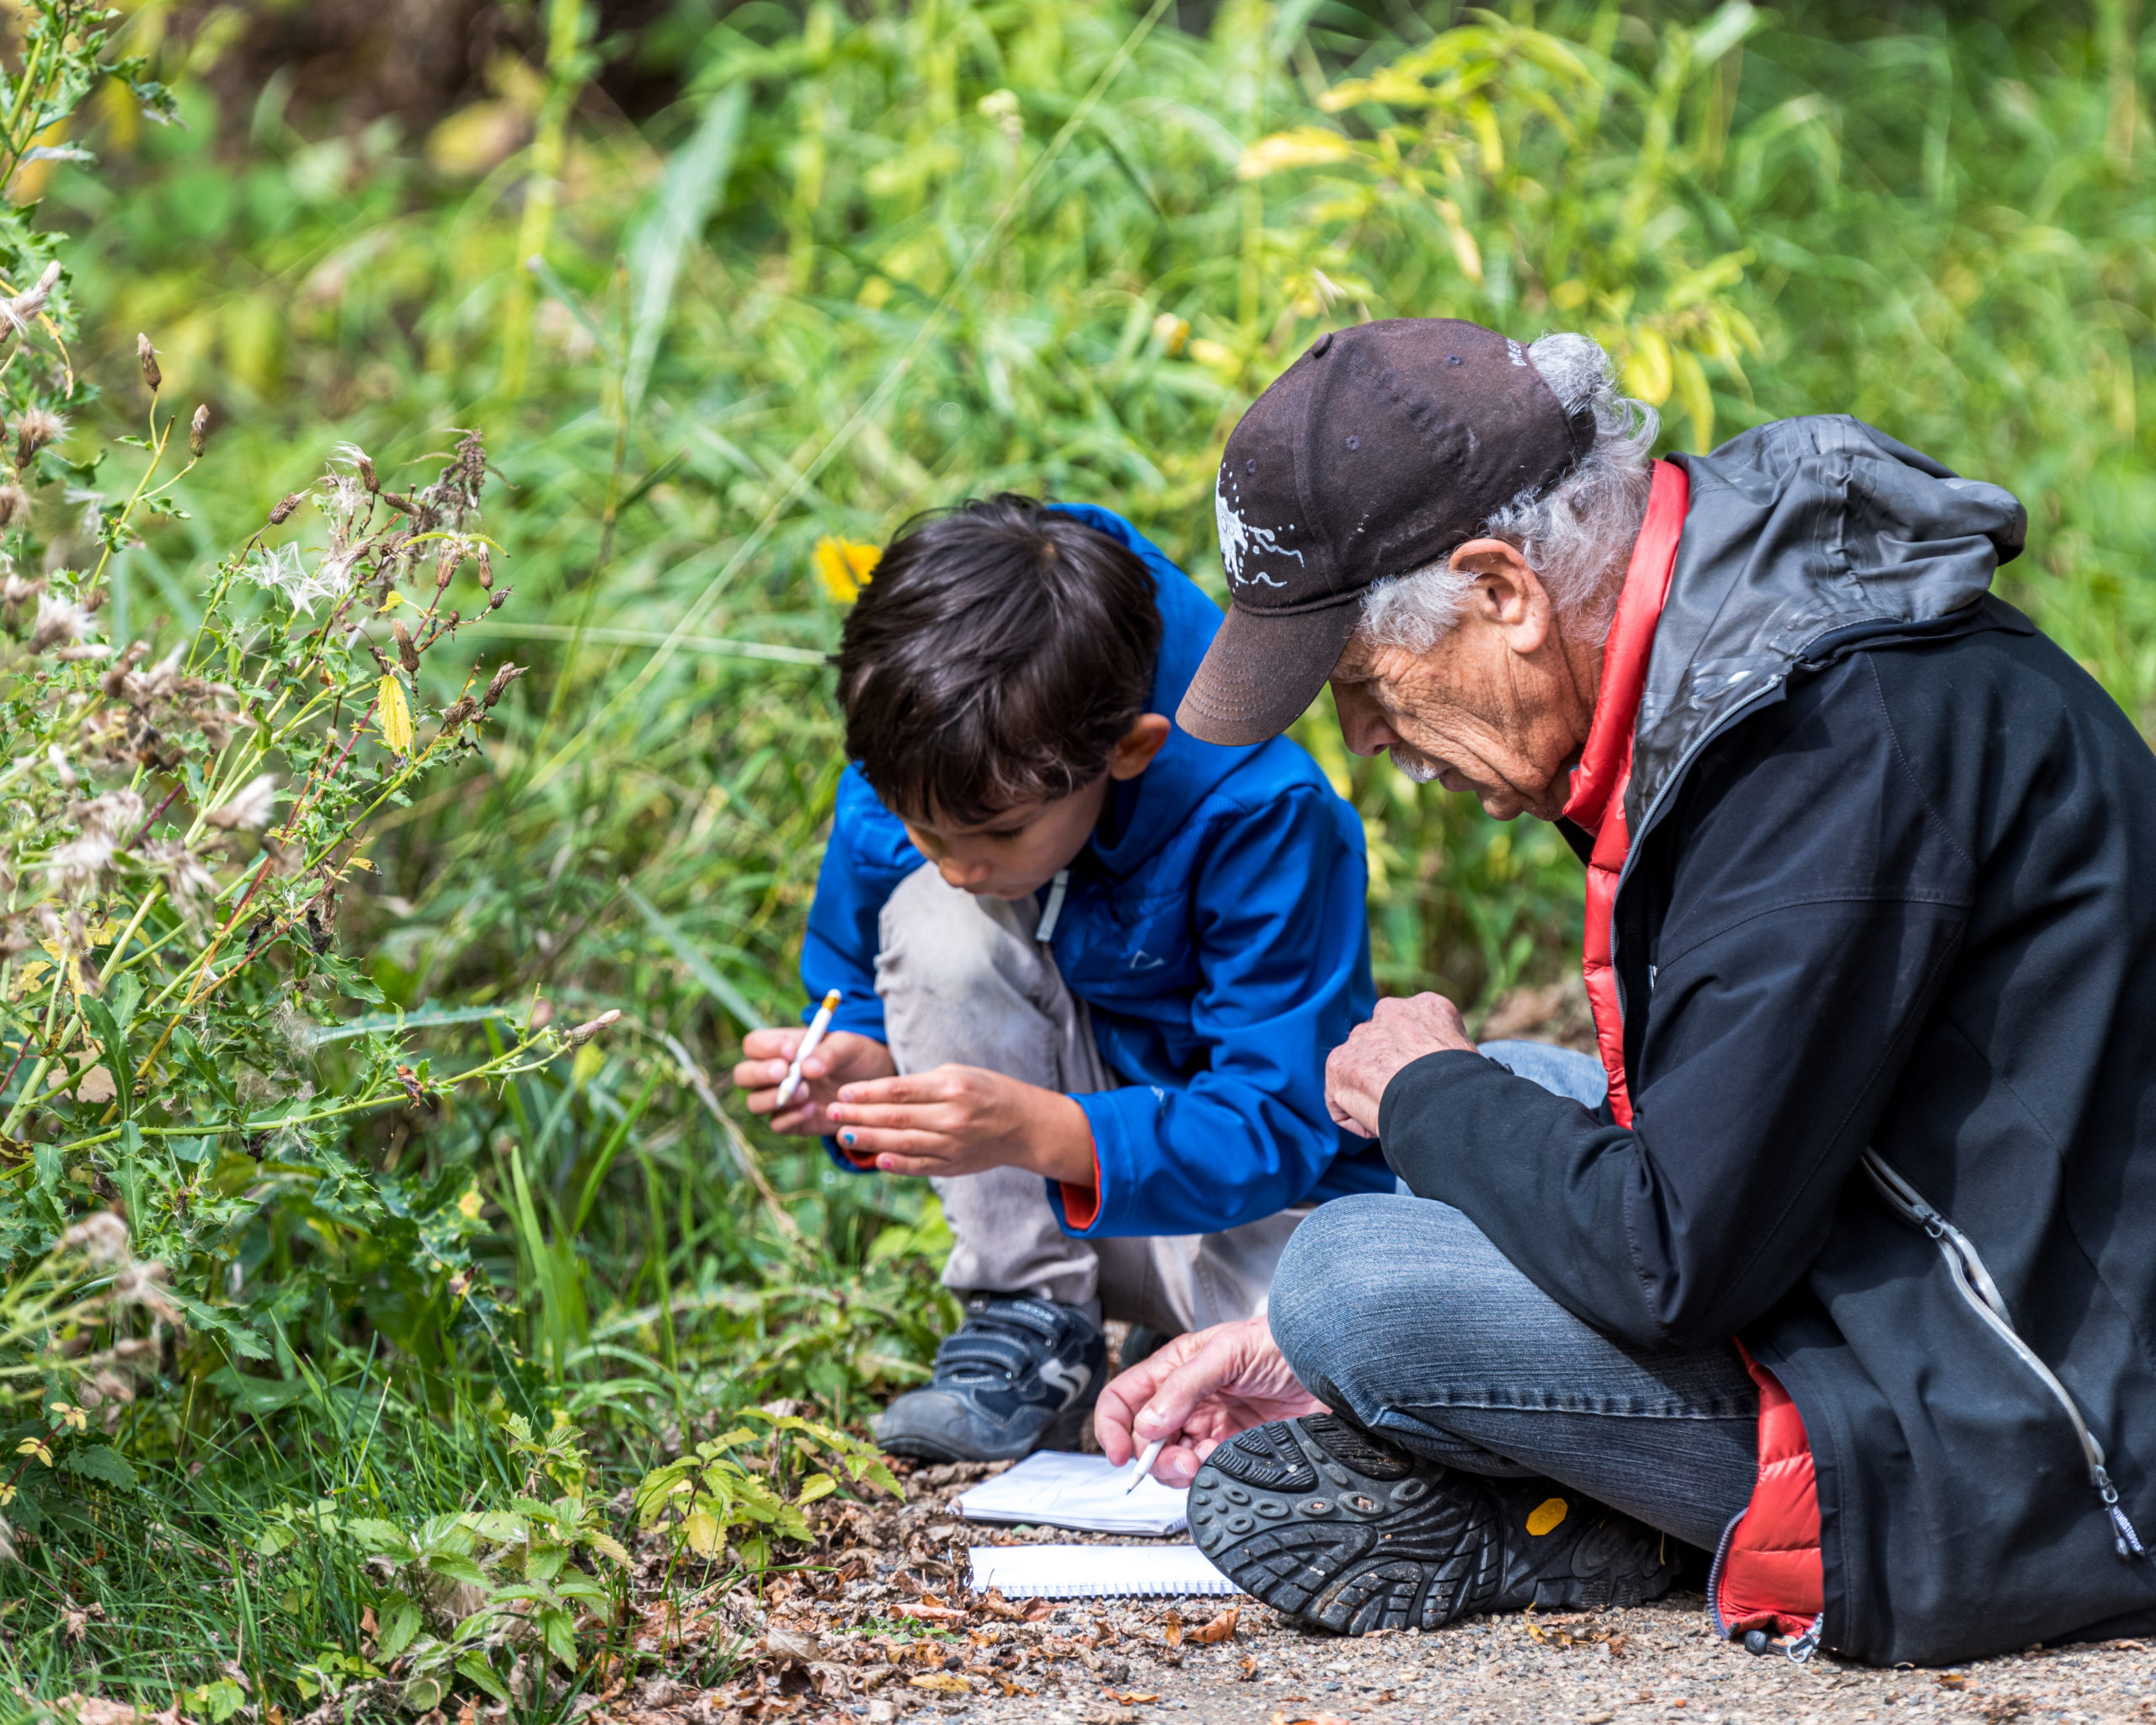 Image of a boy and an elderly man sketching nature together